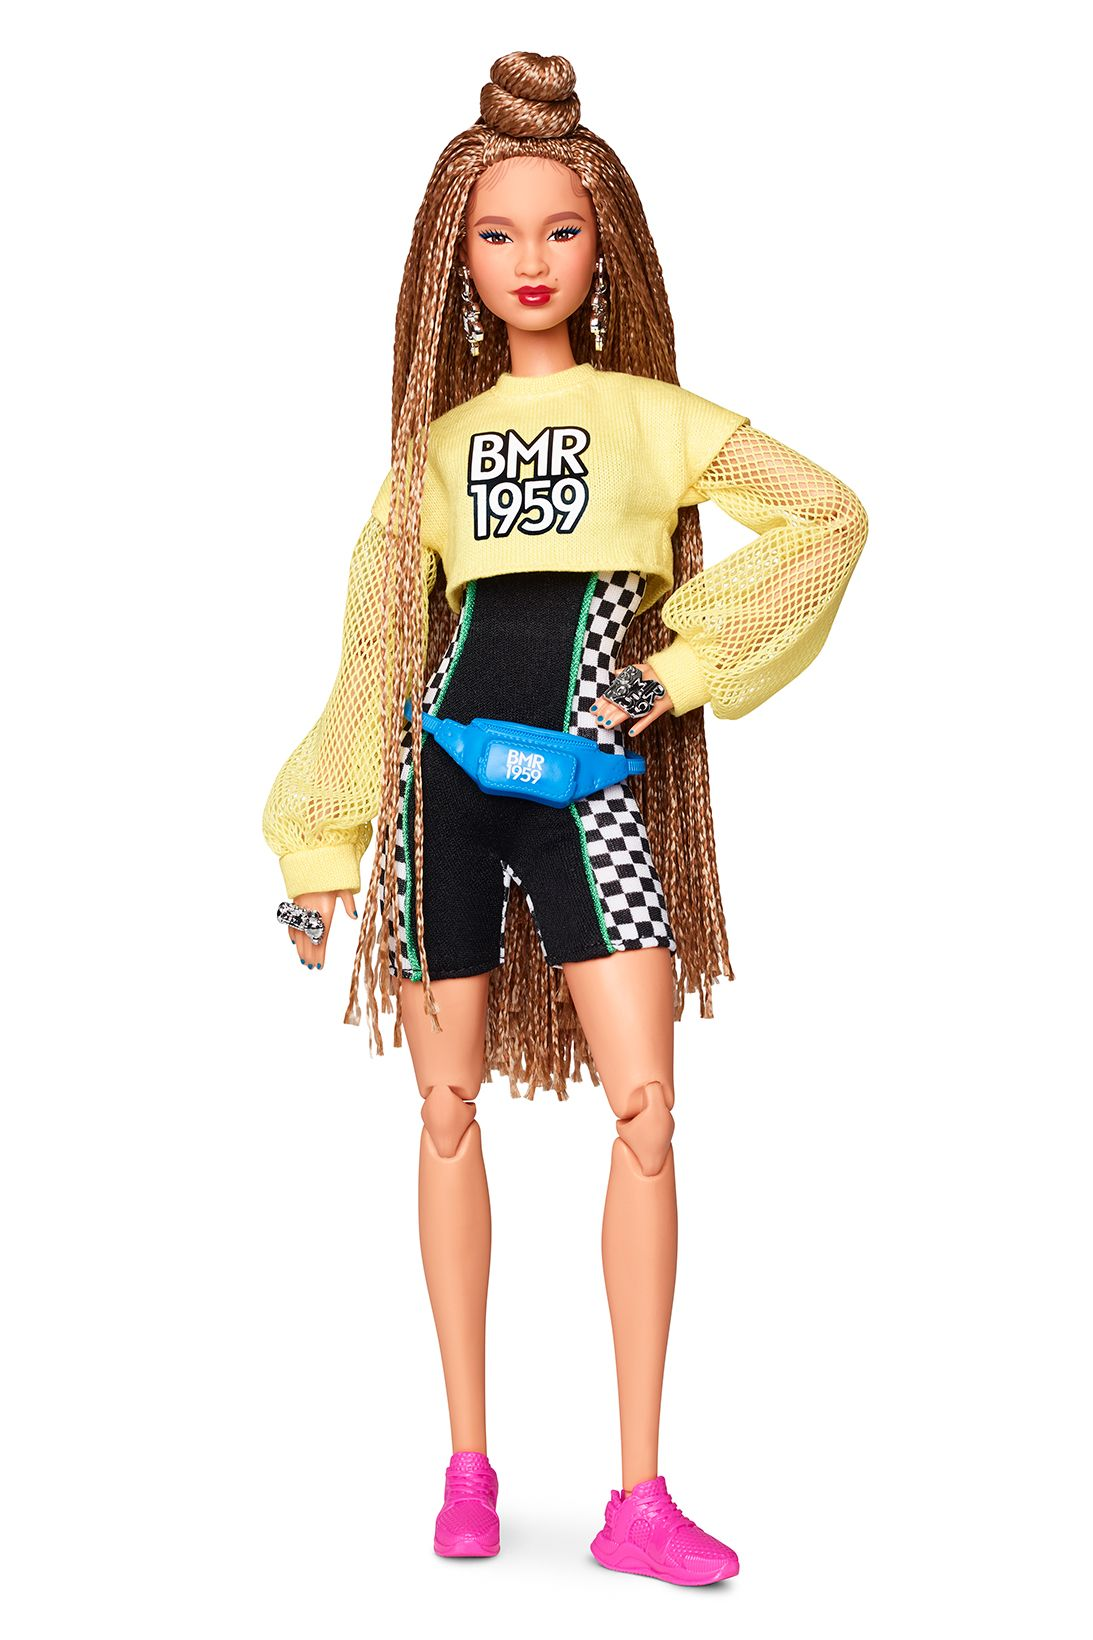 The New Streetwear Barbies Are So Extreme